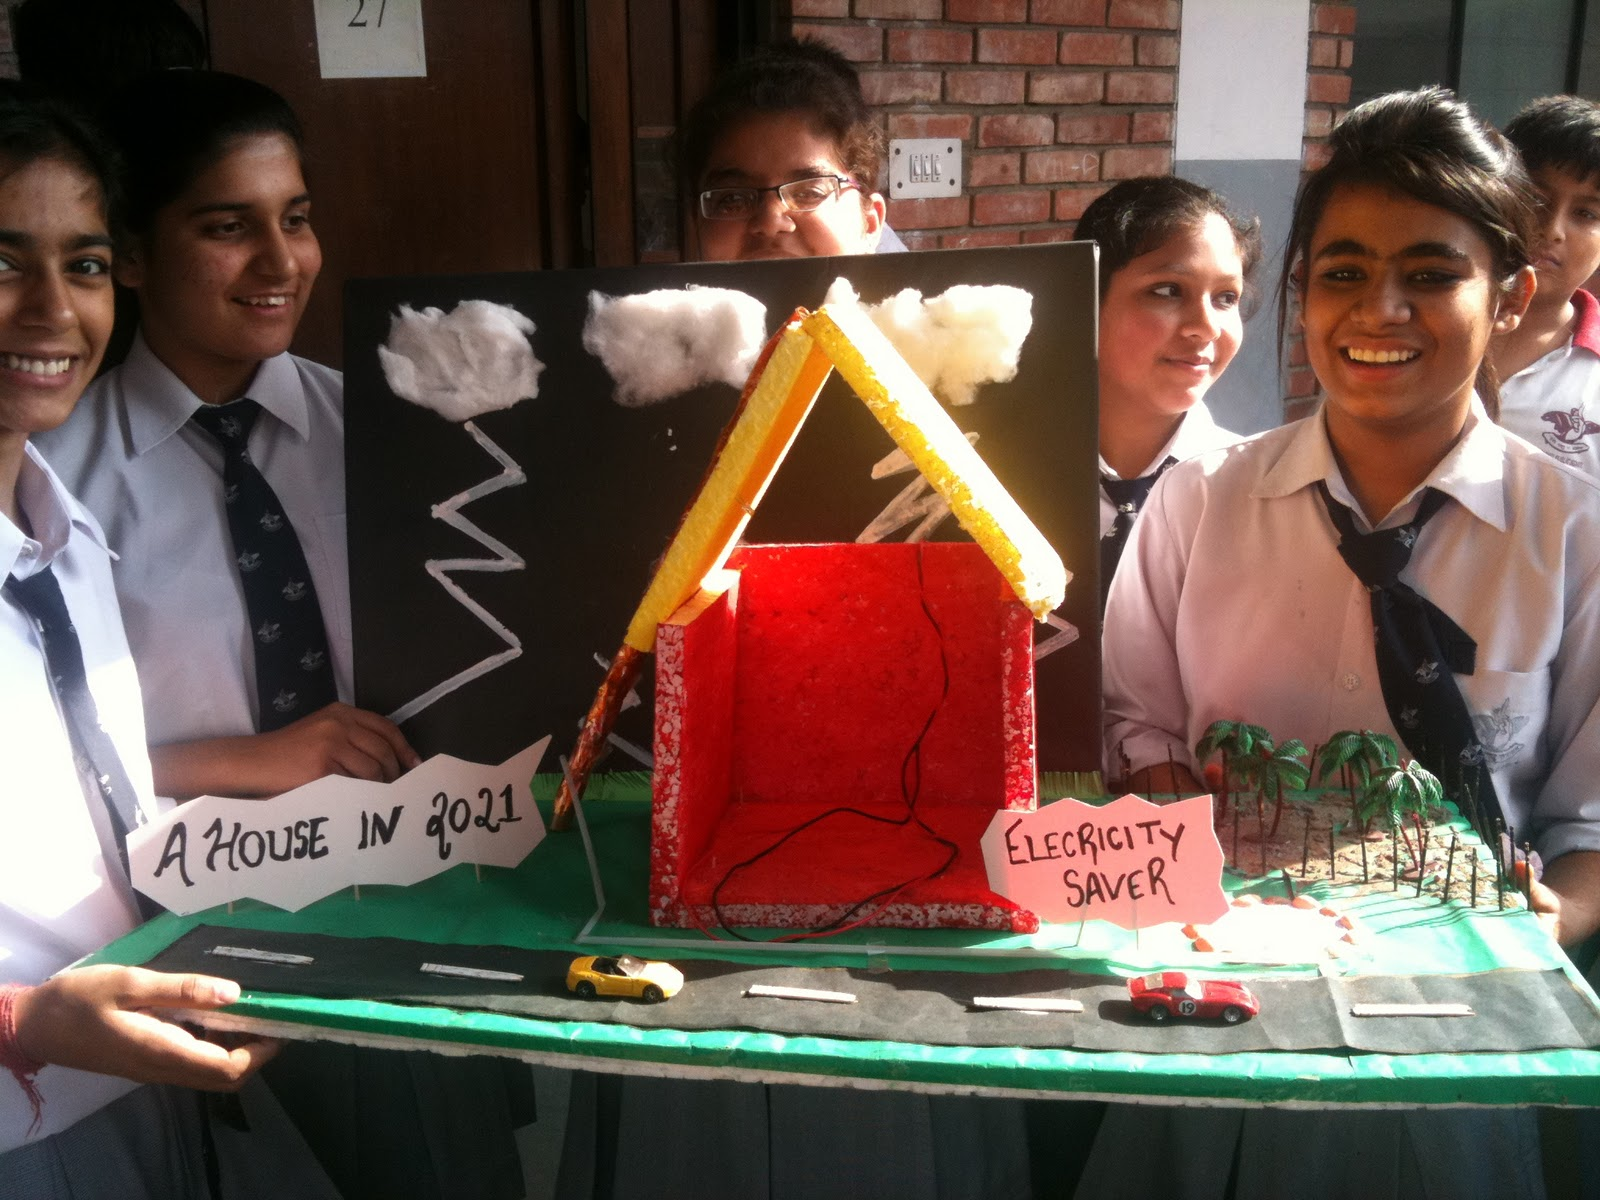 Science Projects for Class 9 http://bbpsrohini.blogspot.com/2011/11/model-on-electricity-production-class-9.html